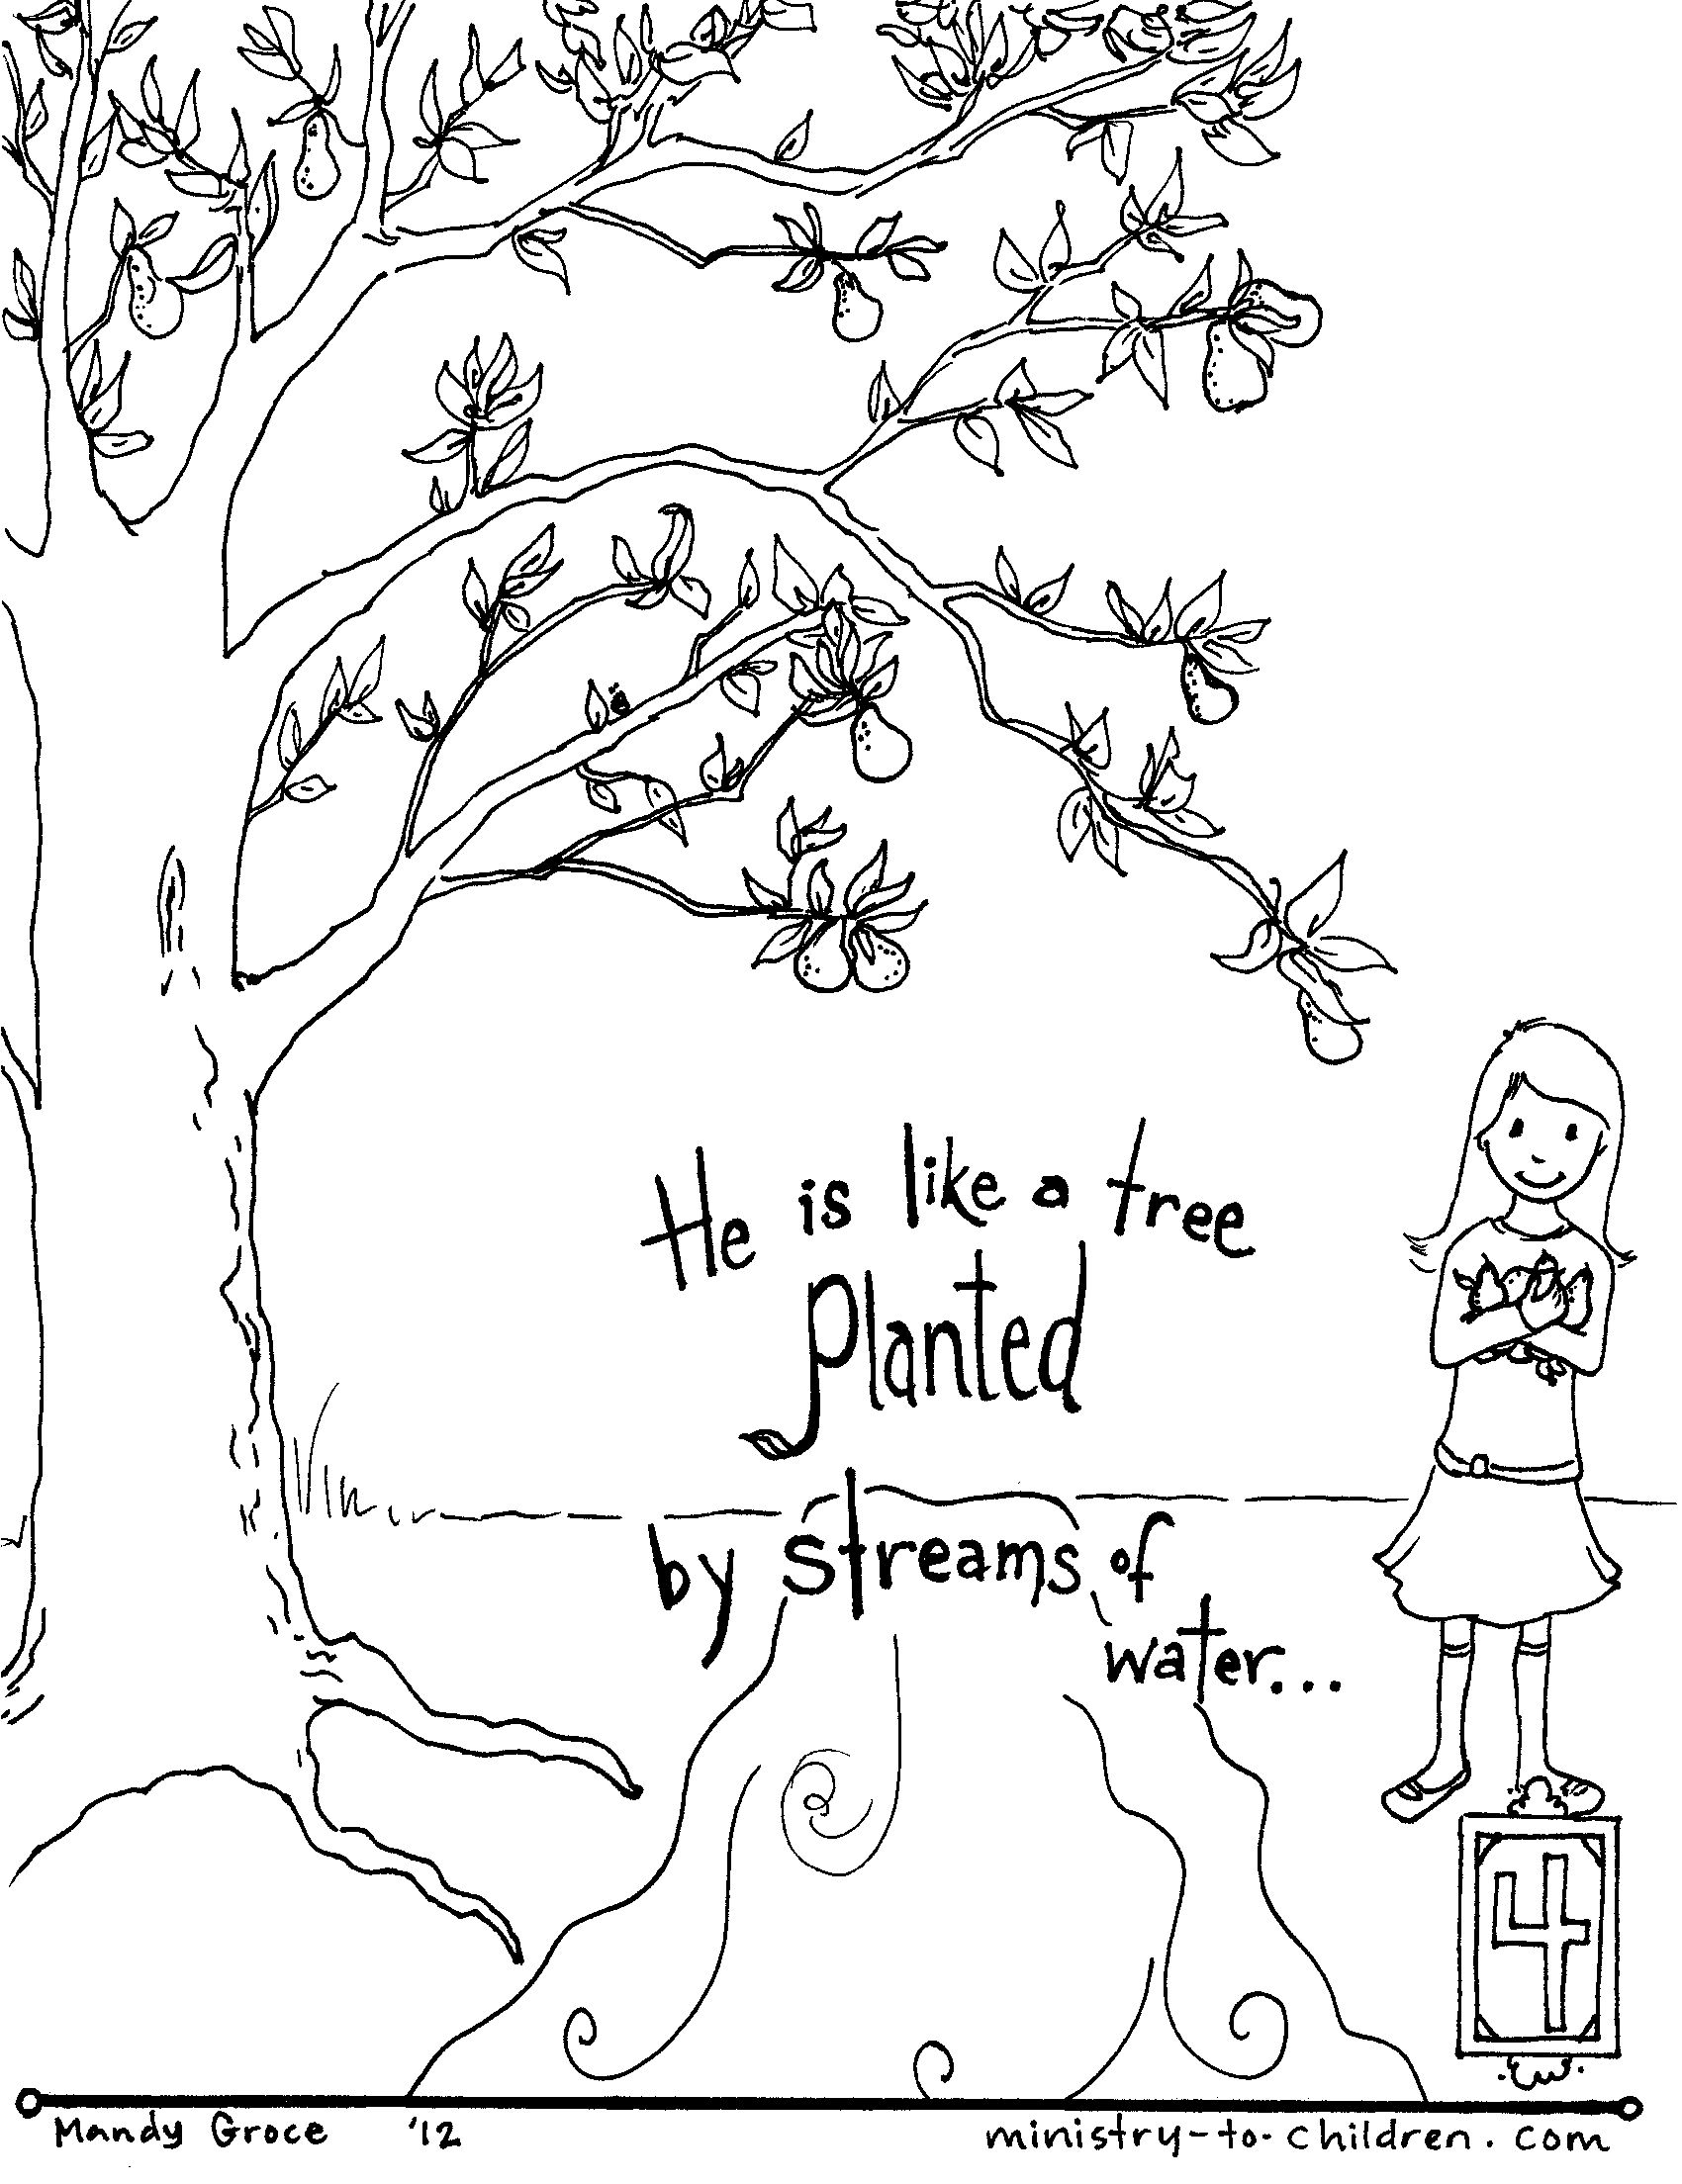 Psalm 1 Coloring Page With Images Bible Verse Coloring Page